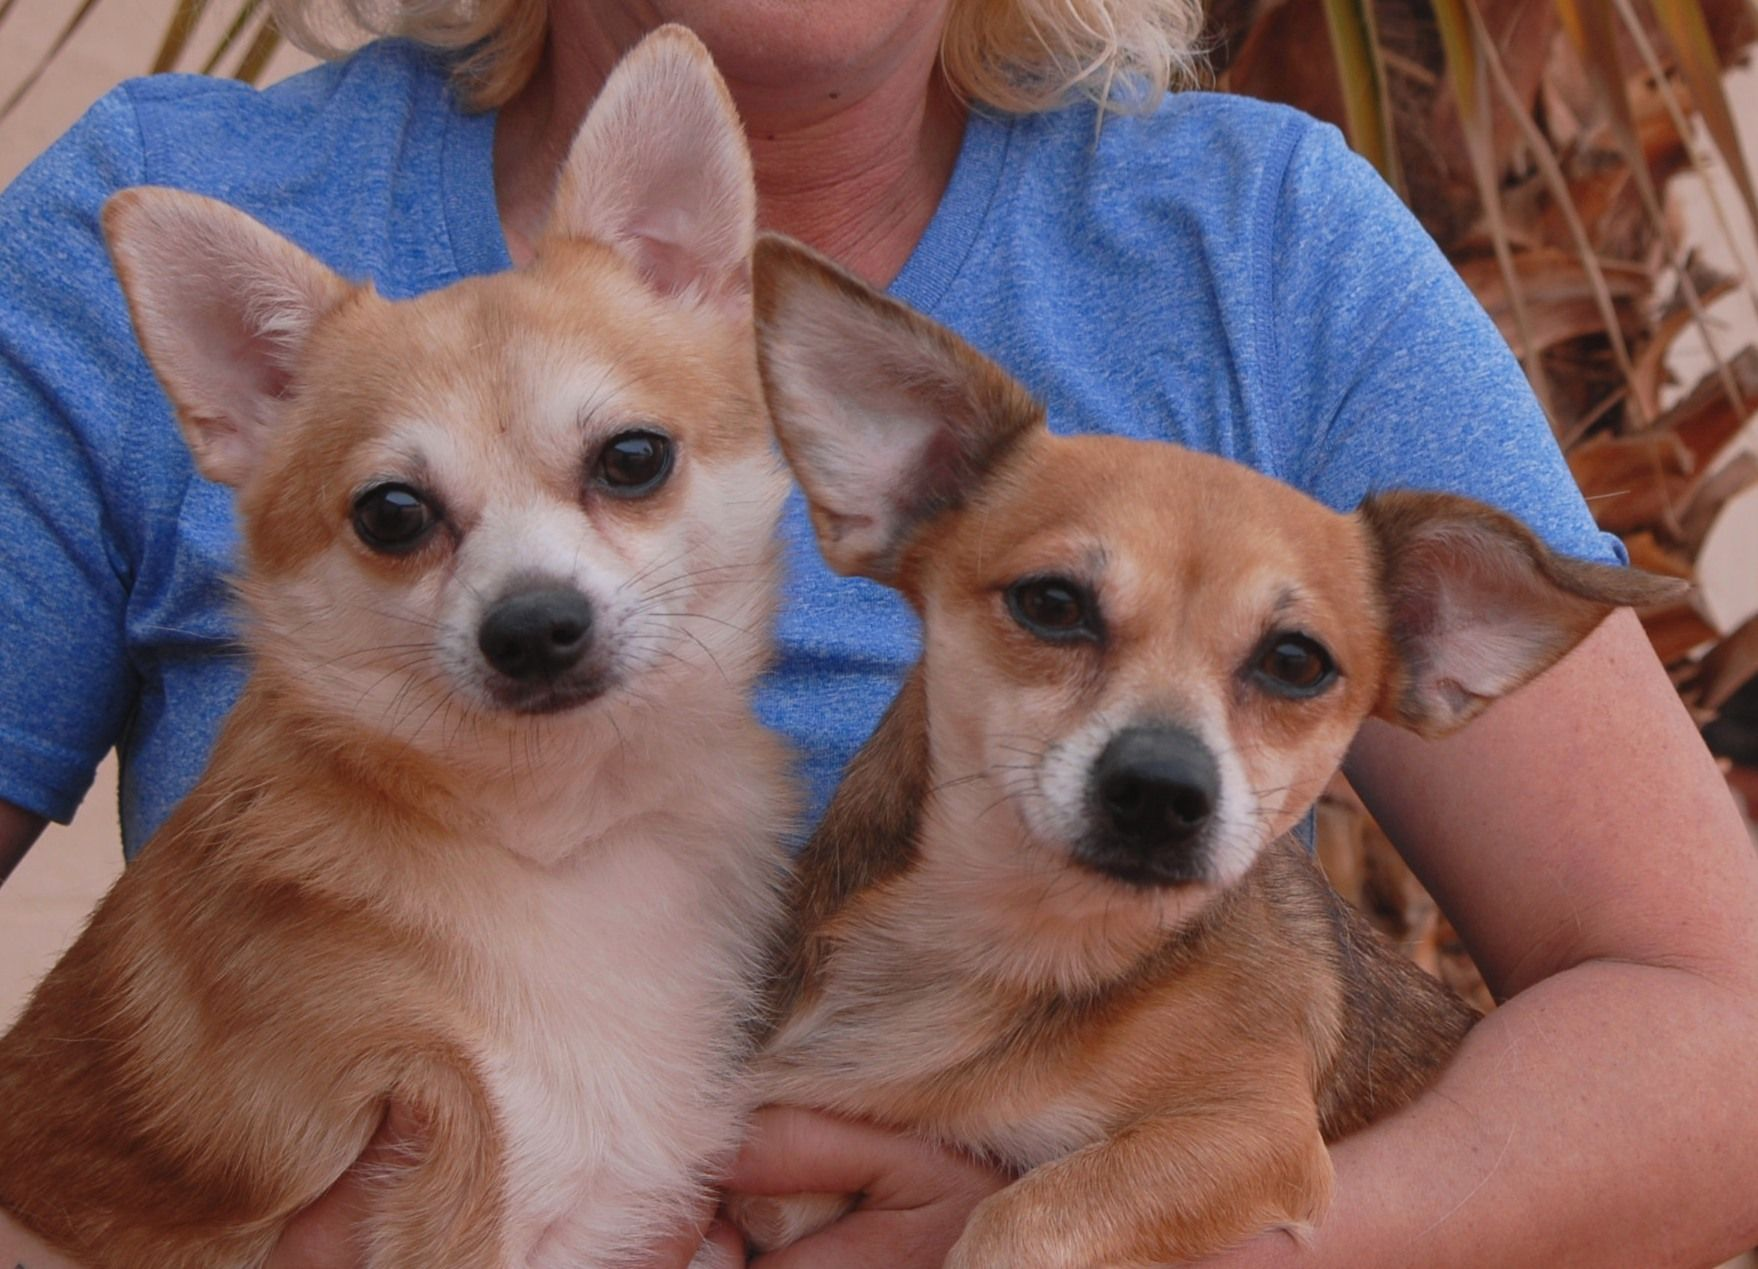 Atom & Reesey, soulmates reunited when rescued from